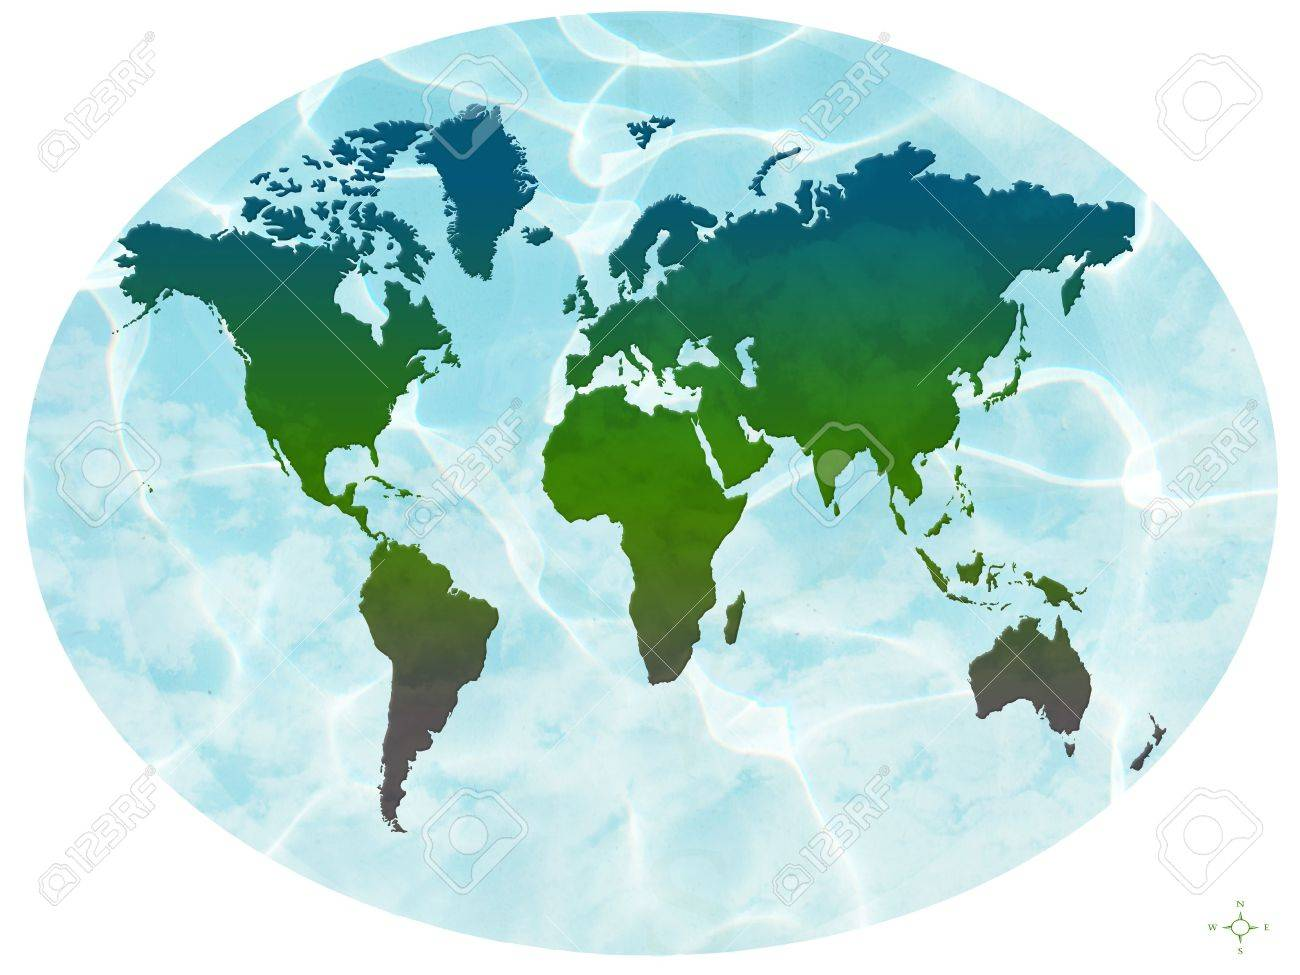 World map in oval with water and clouds stock photo picture and stock photo world map in oval with water and clouds gumiabroncs Image collections